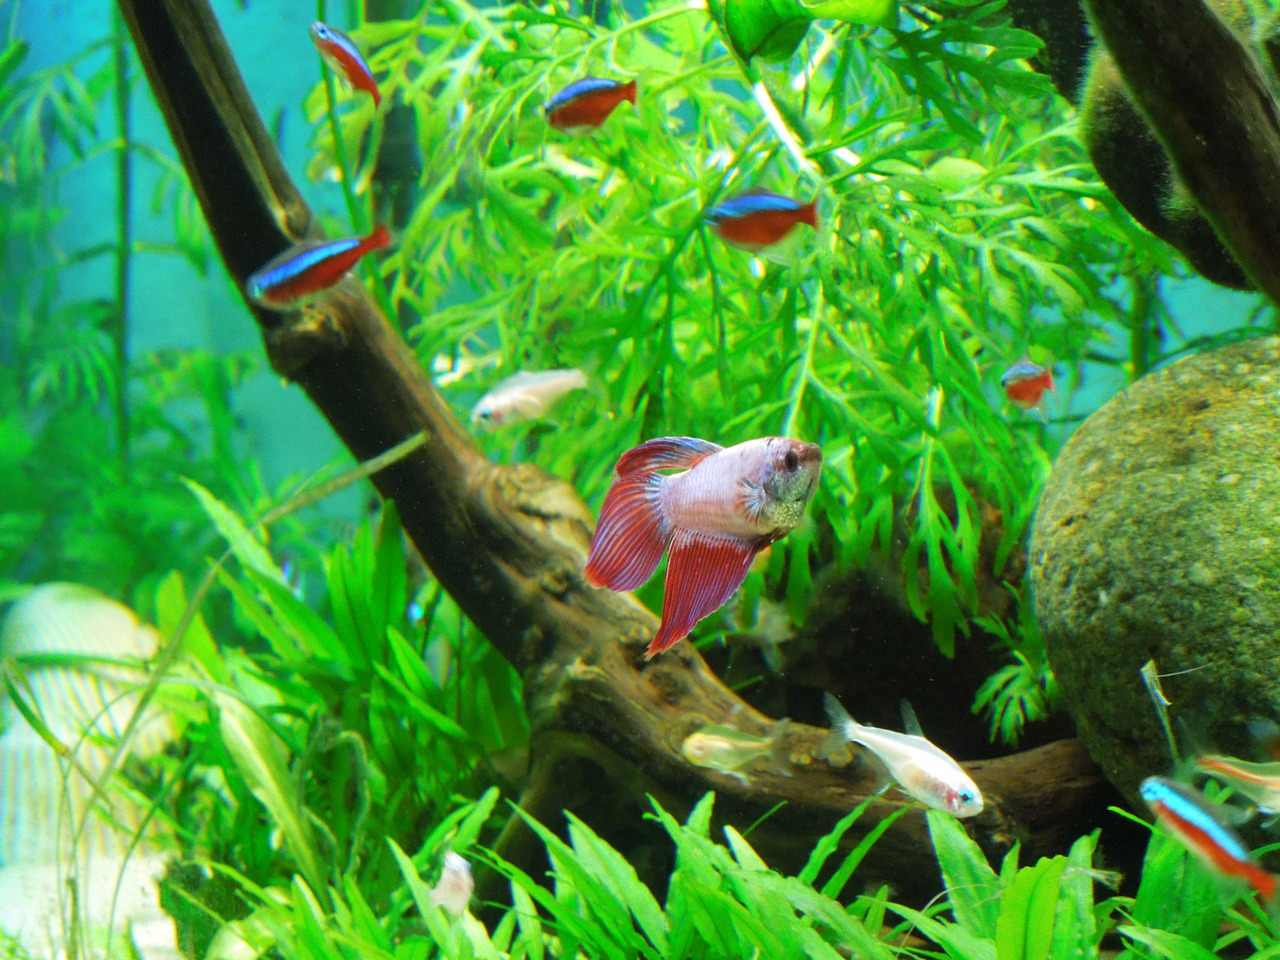 Neon tetra for sale aquariumfish net - A Betta Splendens In A Community Tank With Neon Tetras Photo By Tumblr